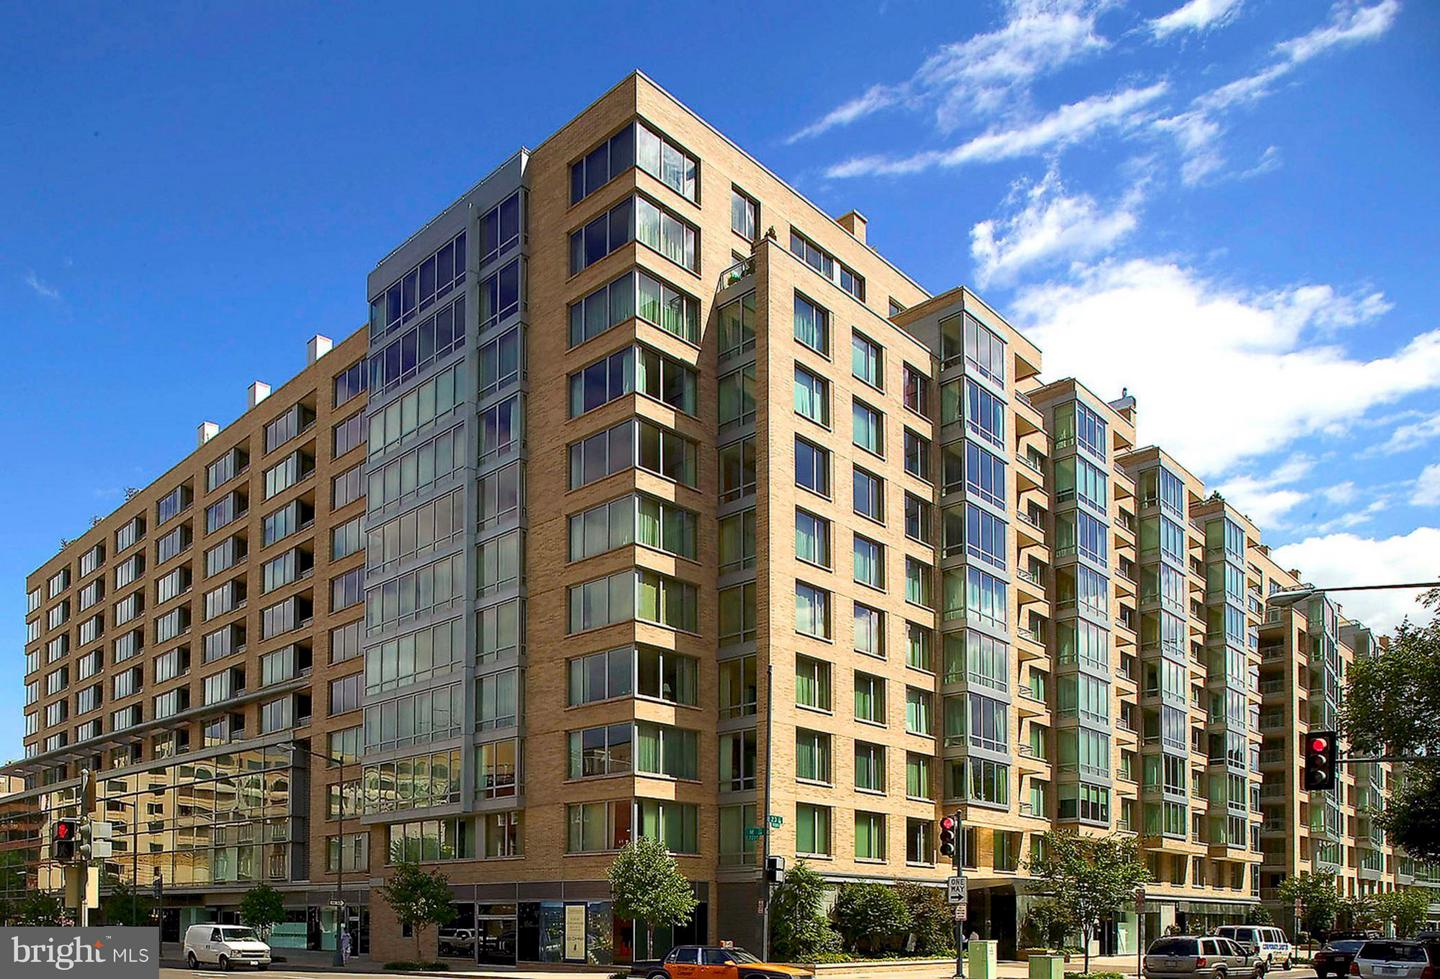 Single Family Home for Sale at 1155 23rd St Nw #2c 1155 23rd St Nw #2c Washington, District Of Columbia 20037 United States